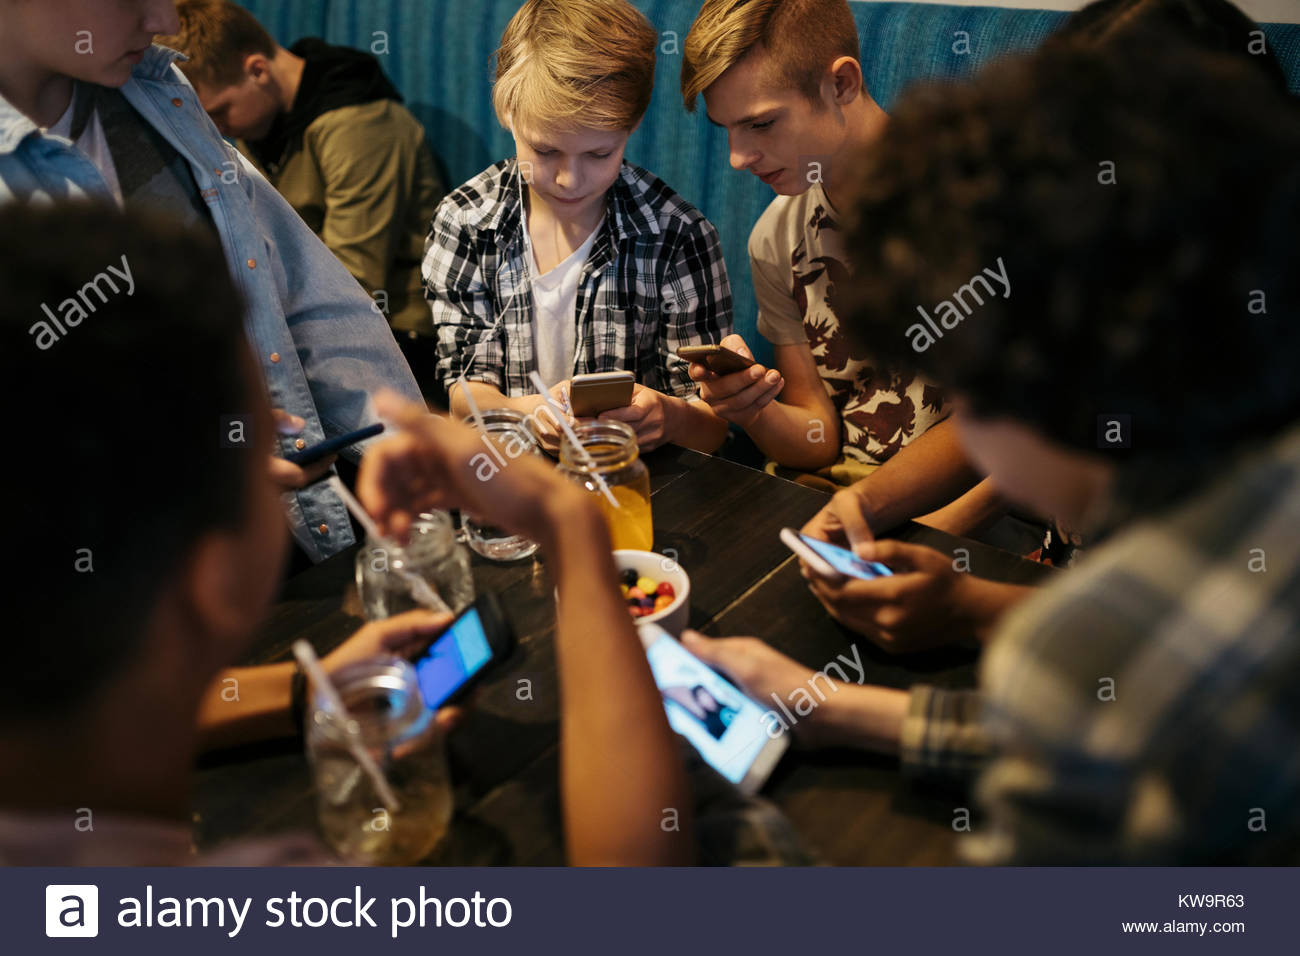 Tween boy friends texting with smart phones,hanging out at cafe table - Stock Image